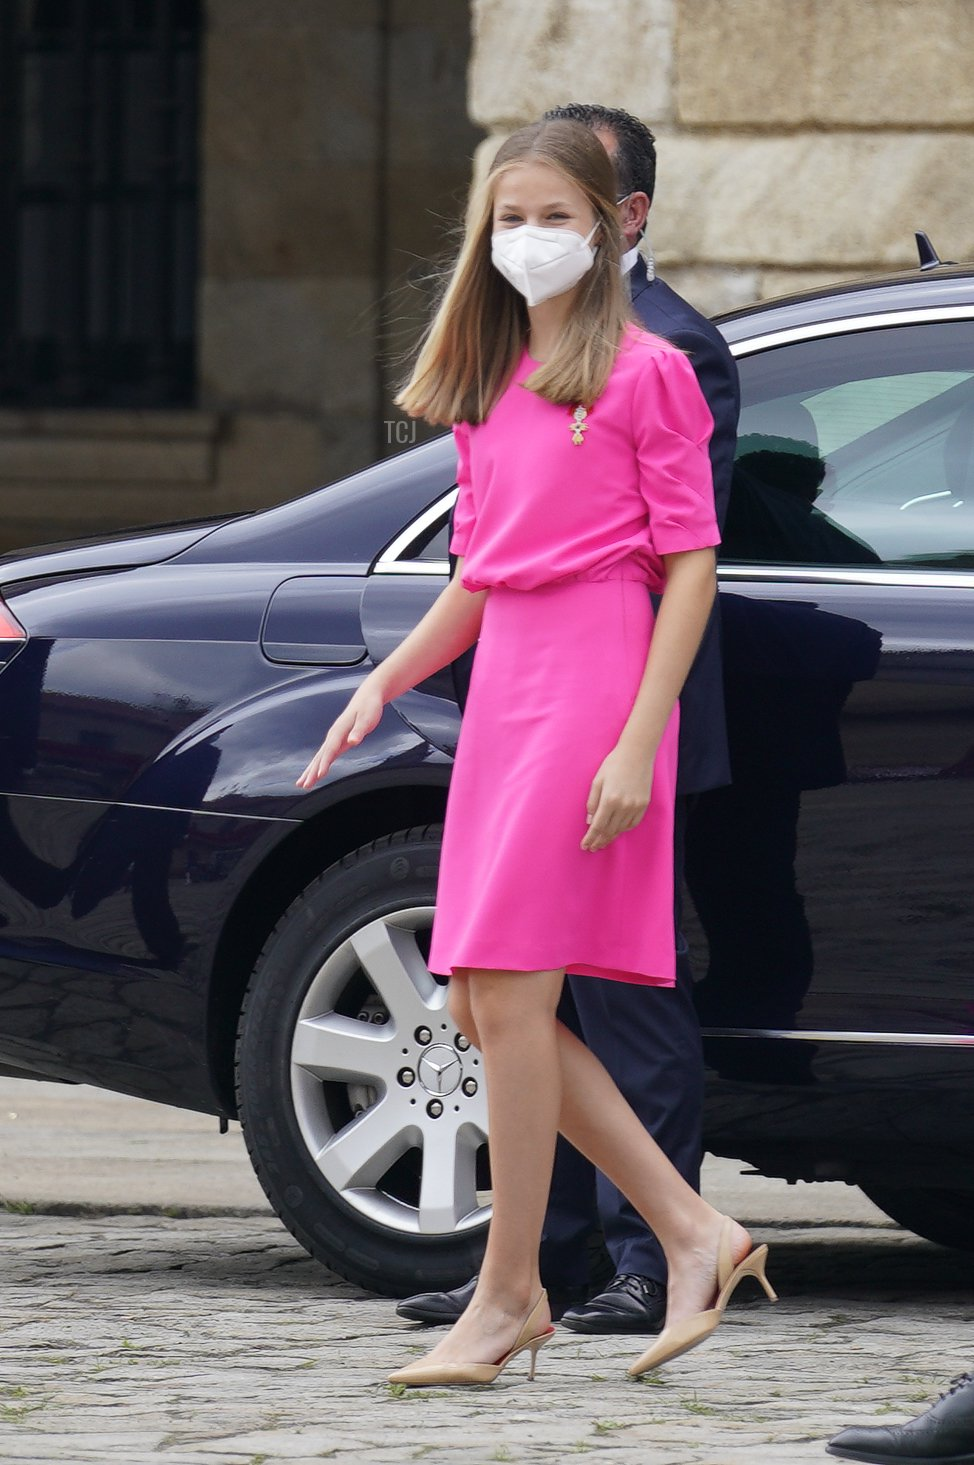 Spanish Royal Family members Crown Princess Leonor appears at the national offering to the apostle Santiago on Santiago's regional festivity at Santiago's Cathedral on July 25, 2021 in Santiago de Compostela